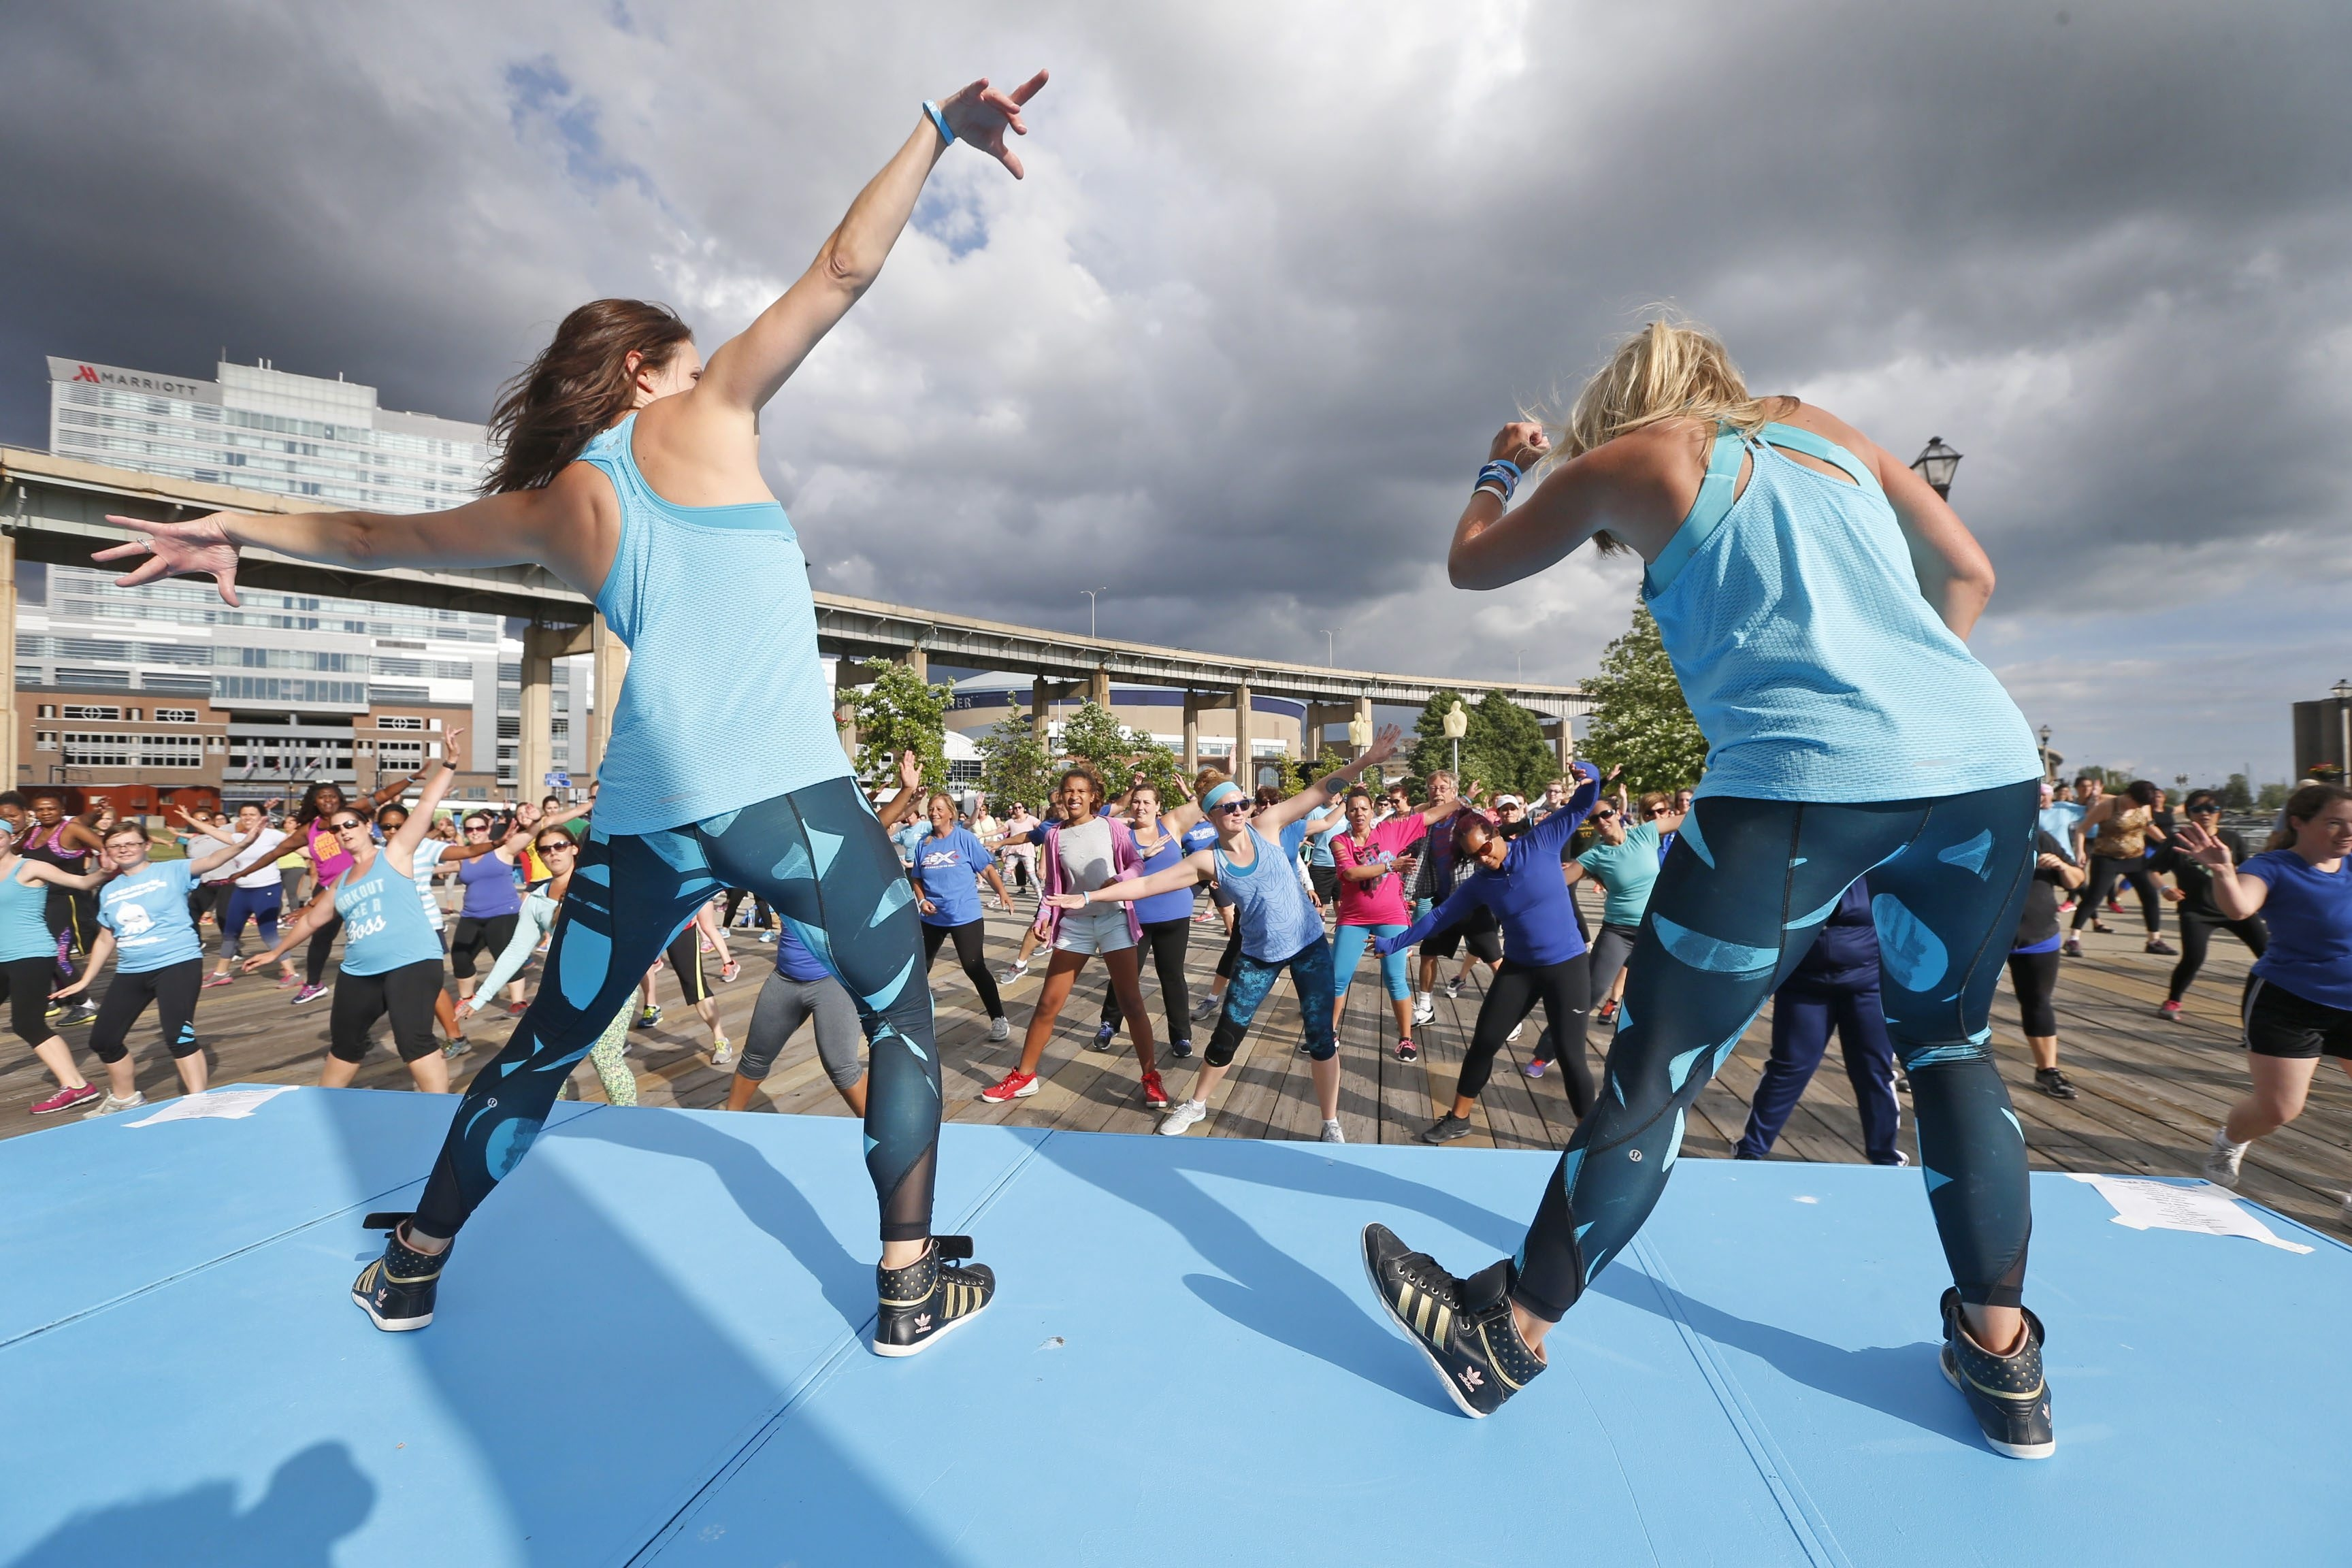 Zumba instructors Meghan Schimmelpenninck, left, and Jen Wright lead participants at Canalside.  (Robert Kirkham/Buffalo News)